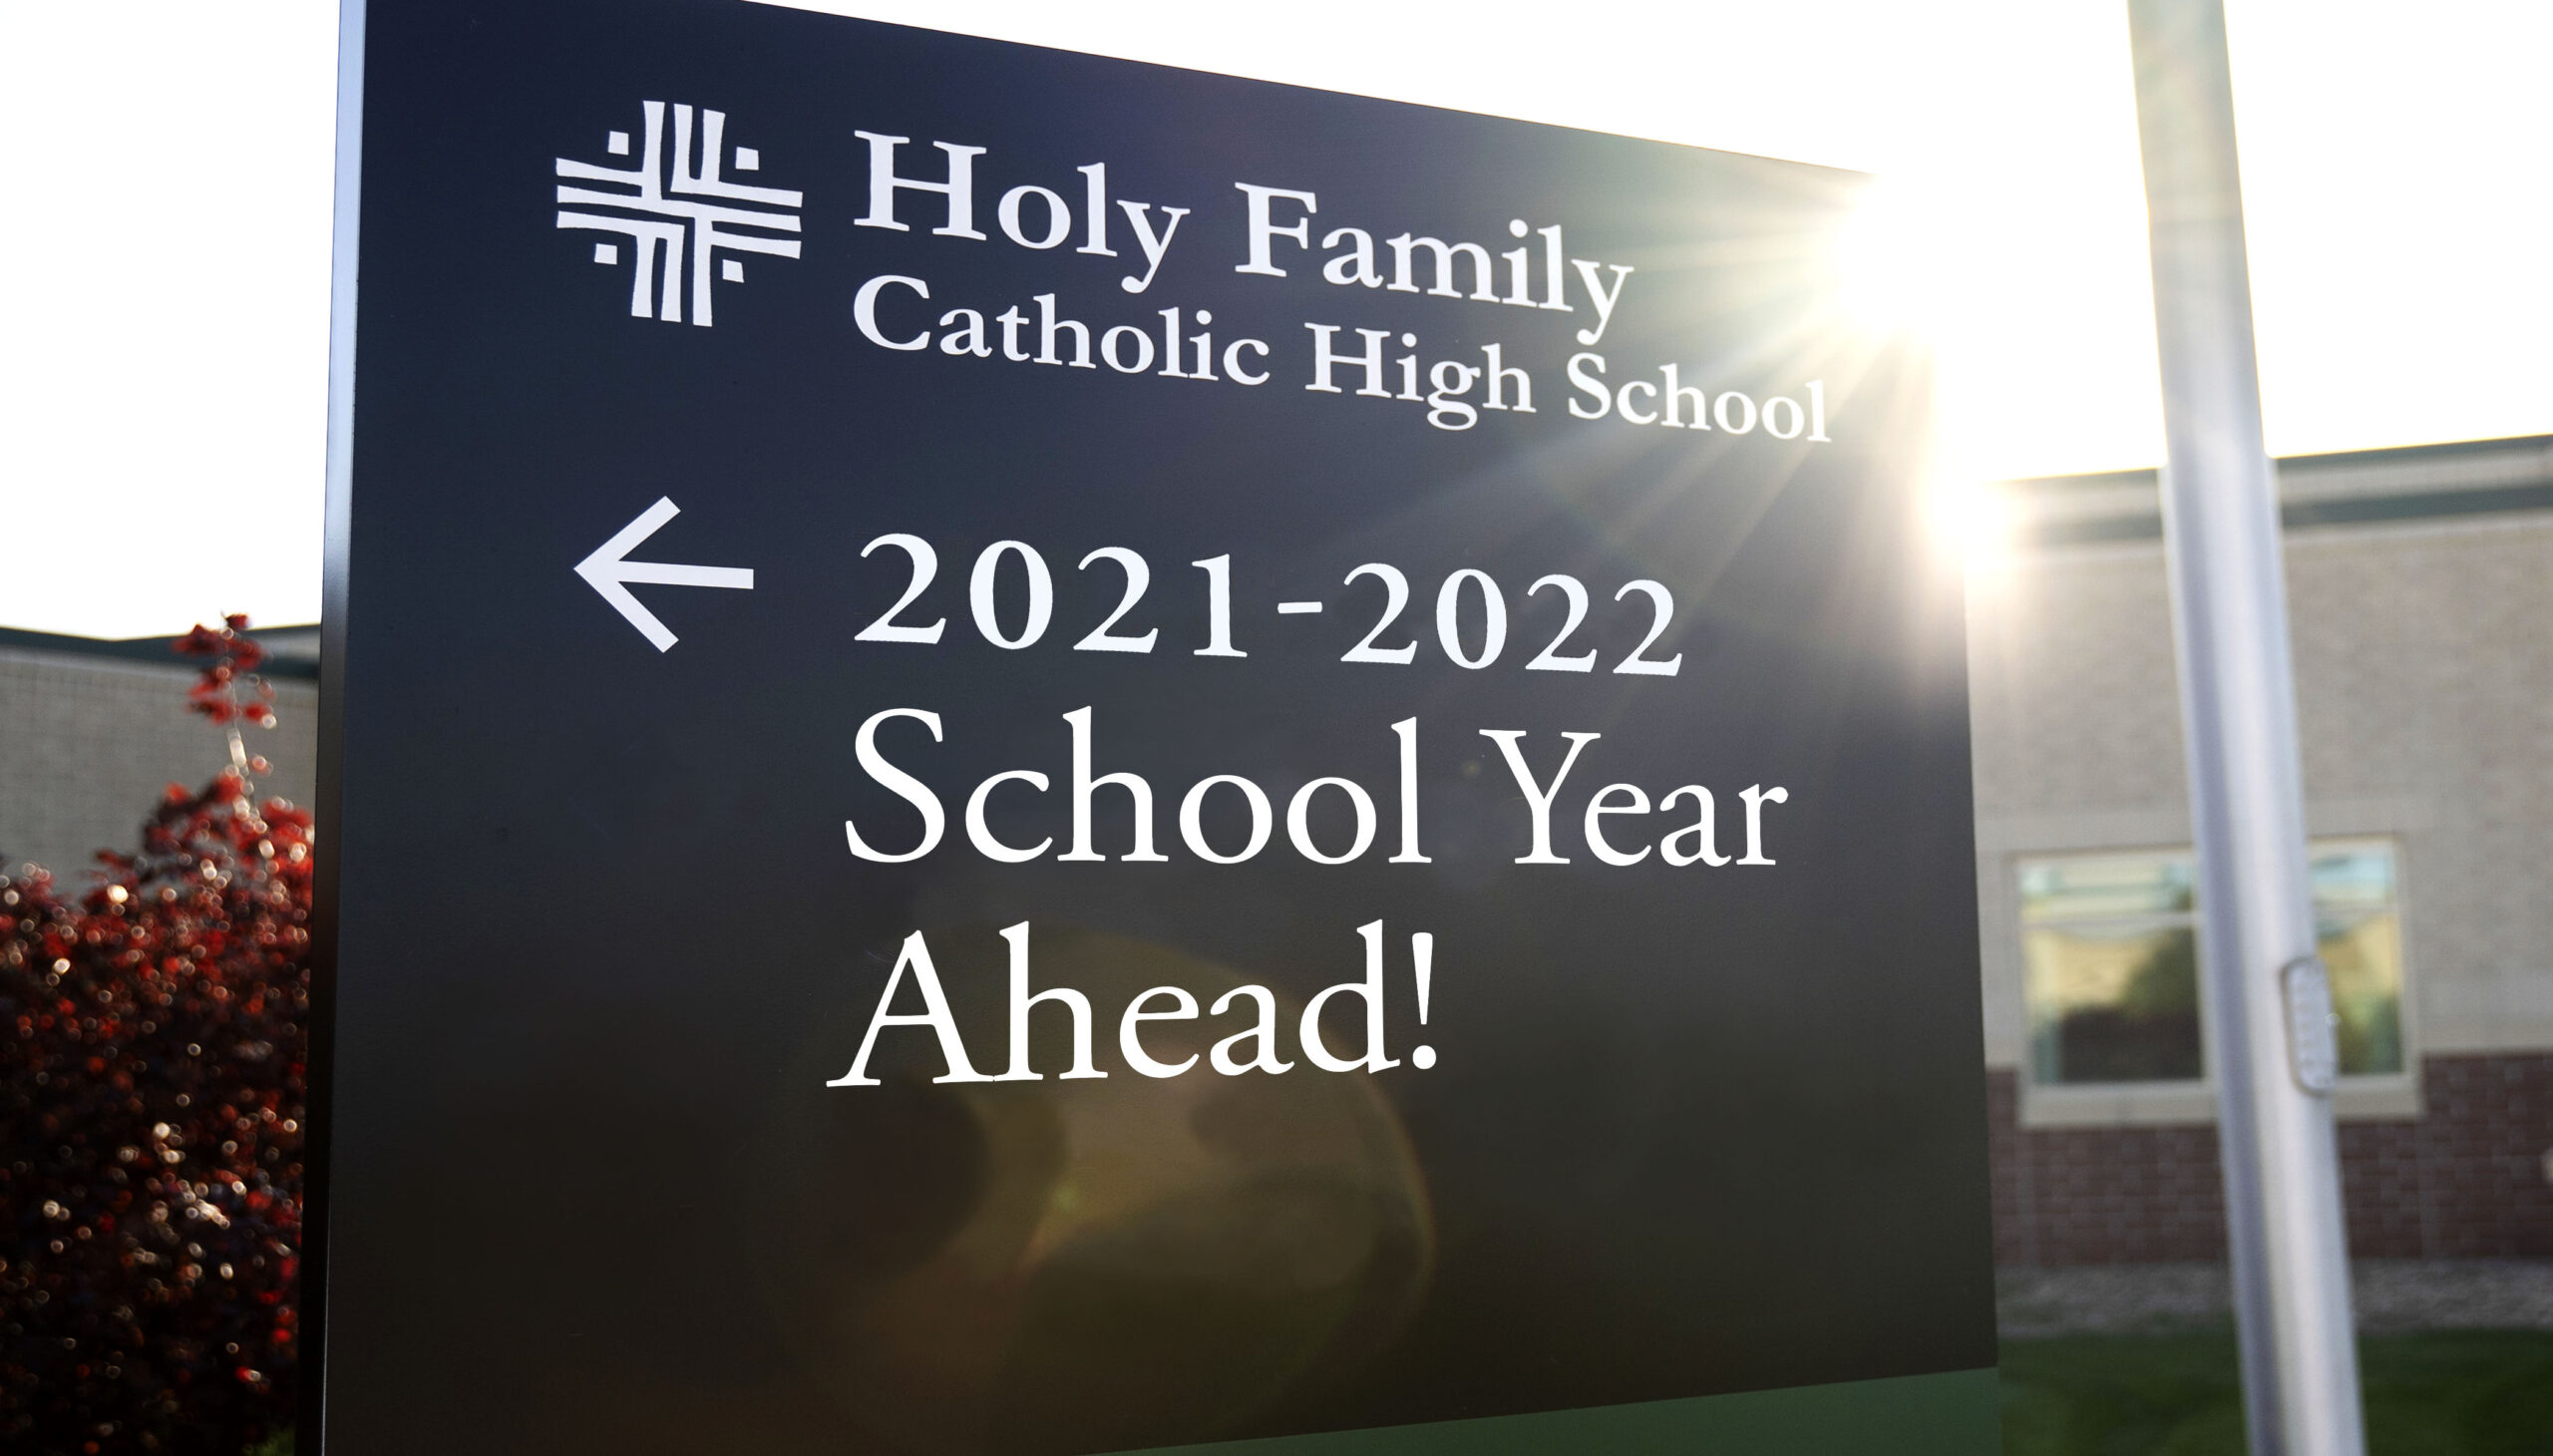 Looking Ahead | HFCHS 2021-22 Learning Model Featured Image.